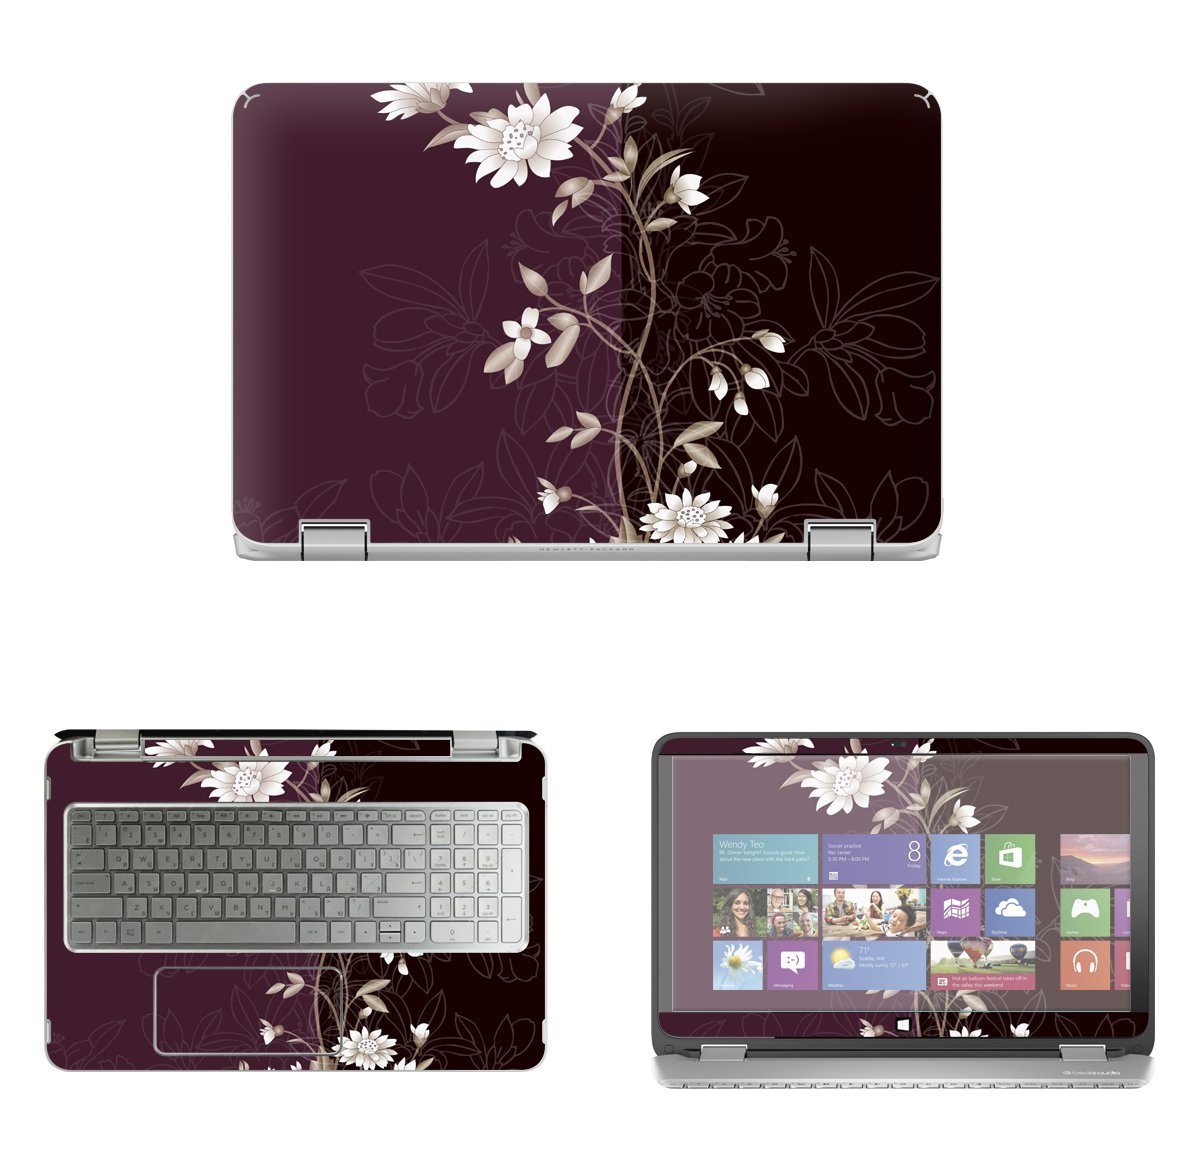 Protective Decal Skin Sticker for HP Envy X360 15-u011dx 2-in-1 (15 6